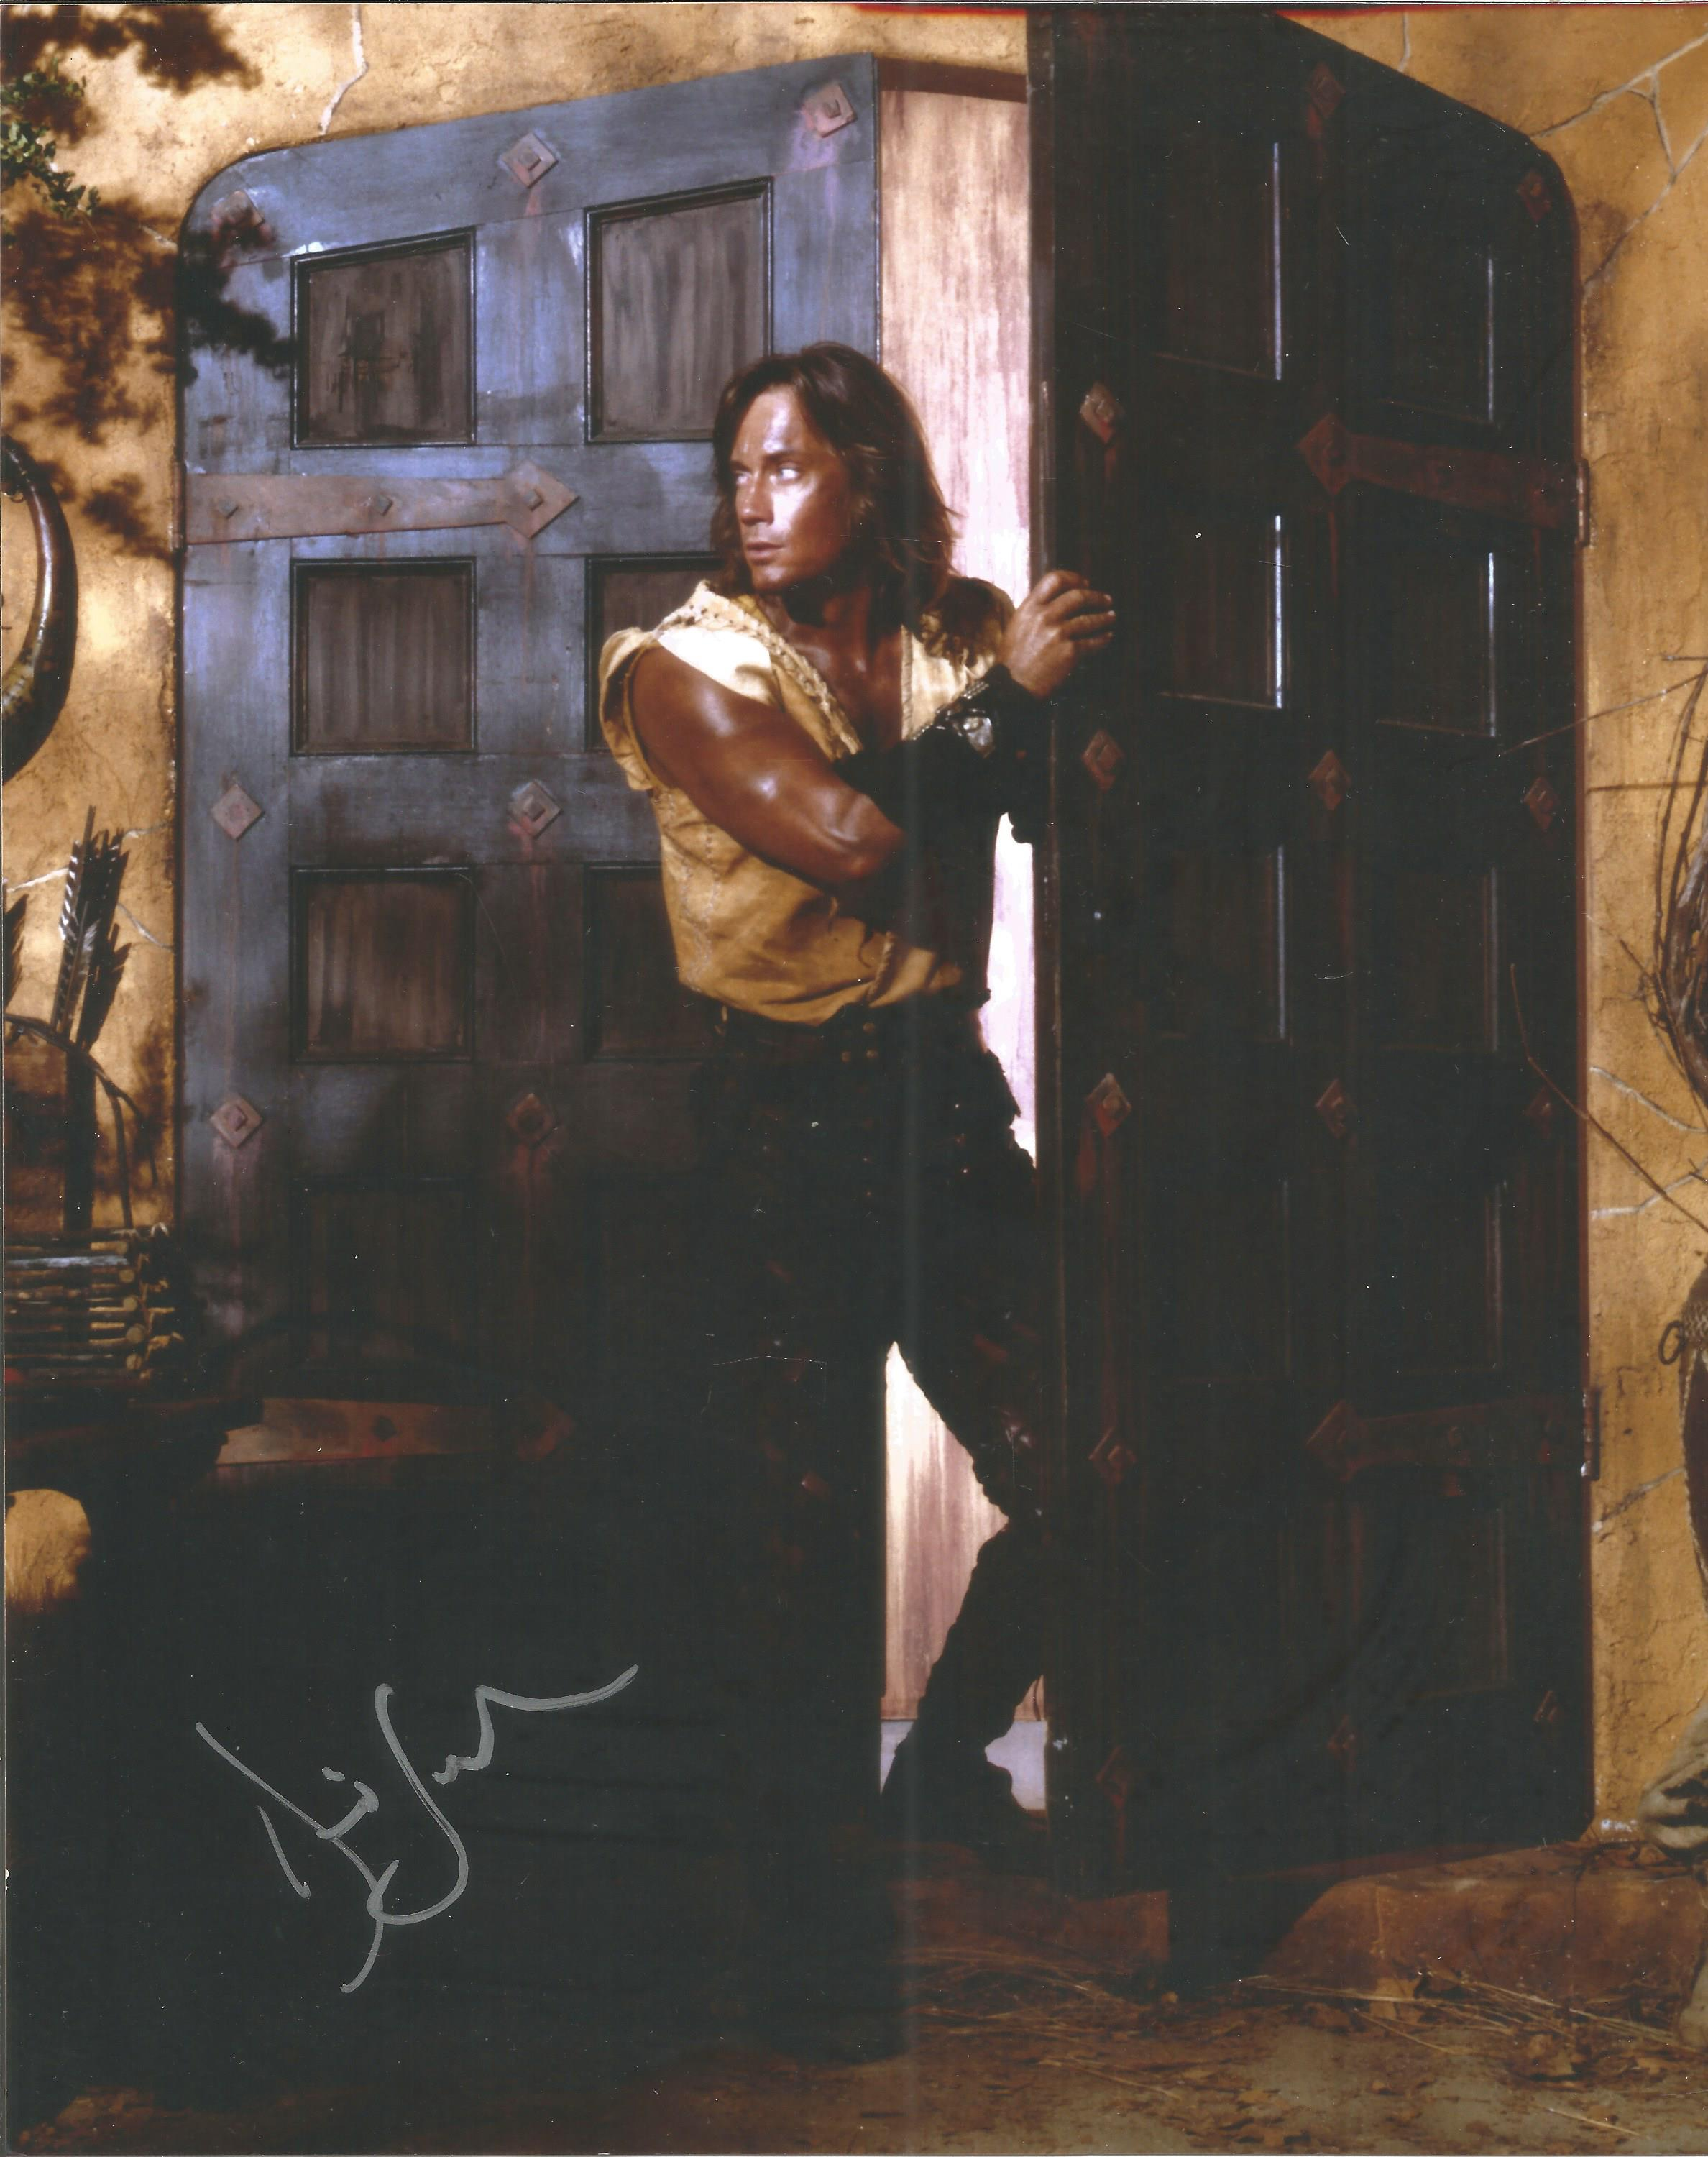 Hercules Kevin Sorbo hand signed 10x8 photo. This beautiful hand signed photo depicts Kevin Sorbo.